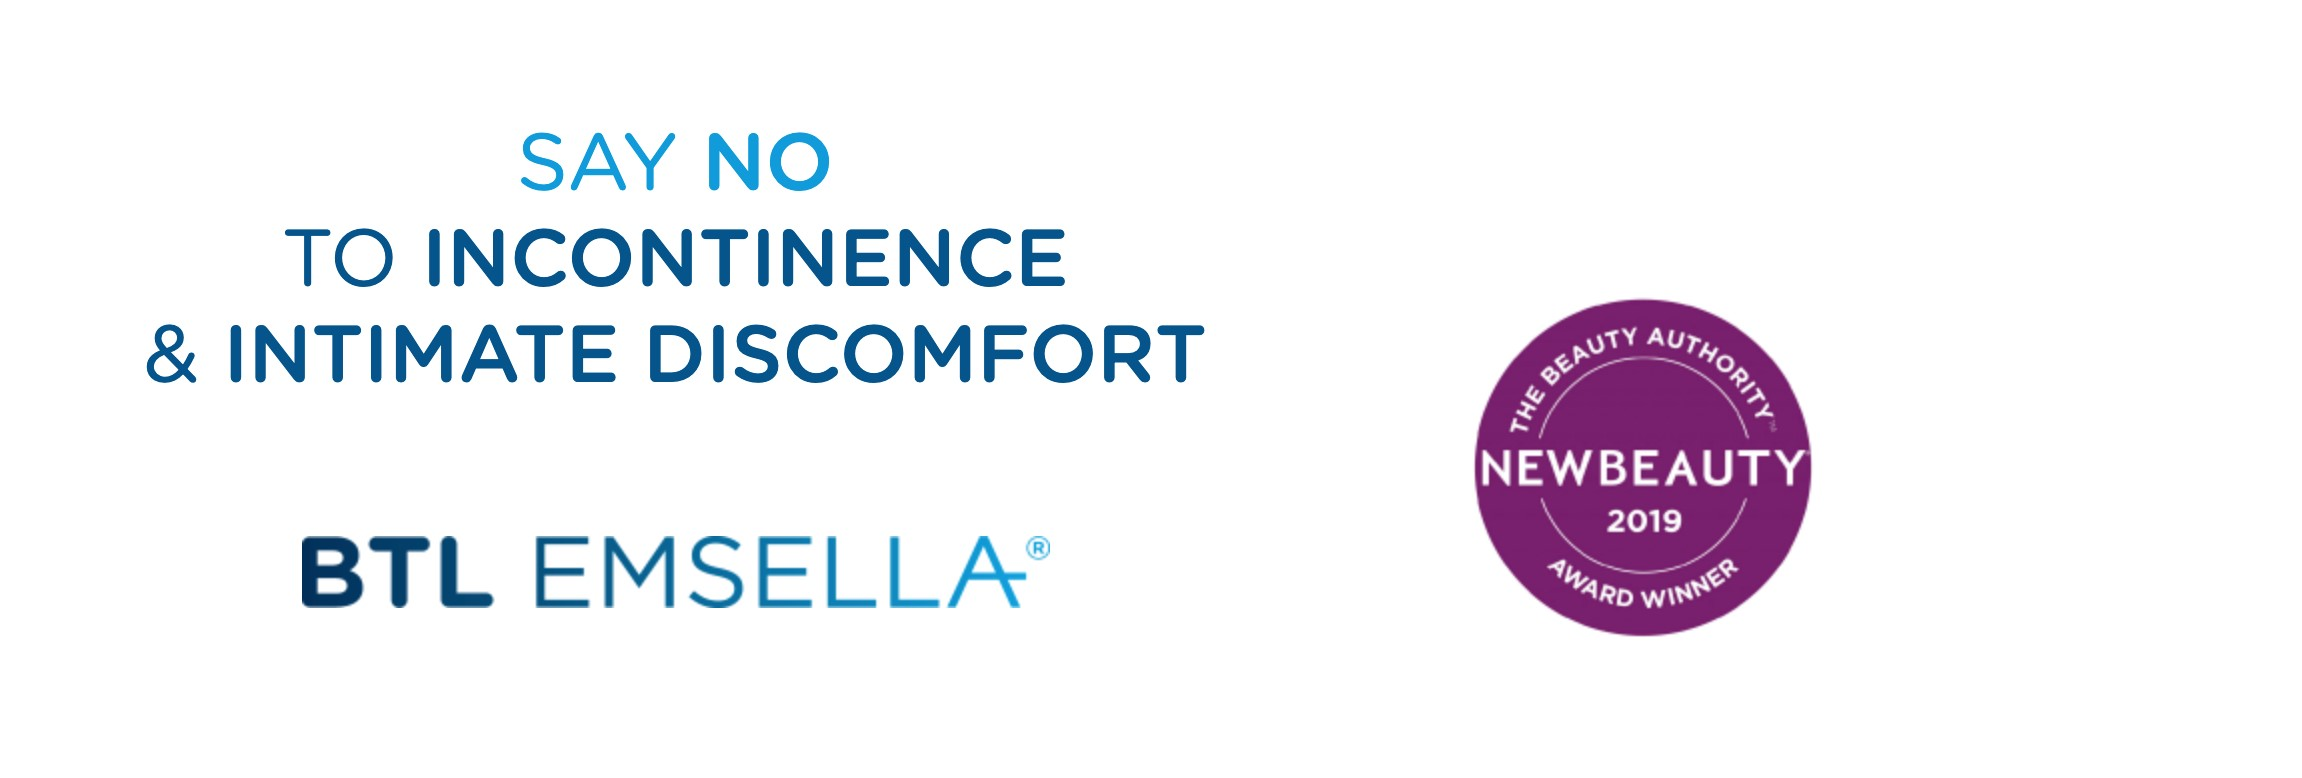 BTL Emsella for incontinence